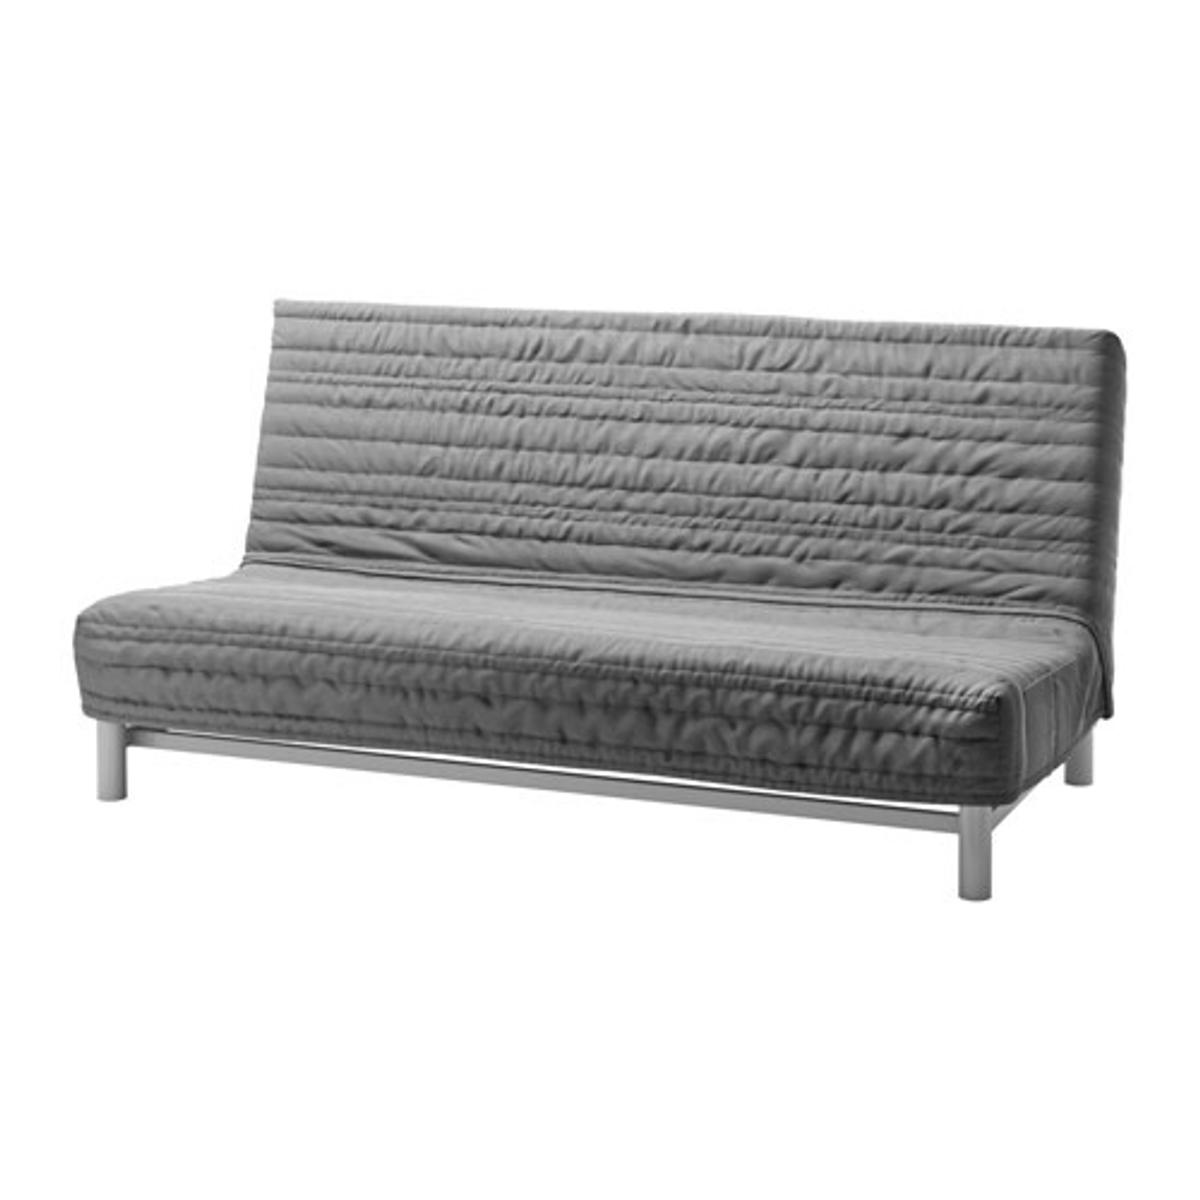 Bettsofa Ikea Beddinge Ikea Beddinge Havet Bettsofa In 76137 Karlsruhe Für 40 00 Kaufen